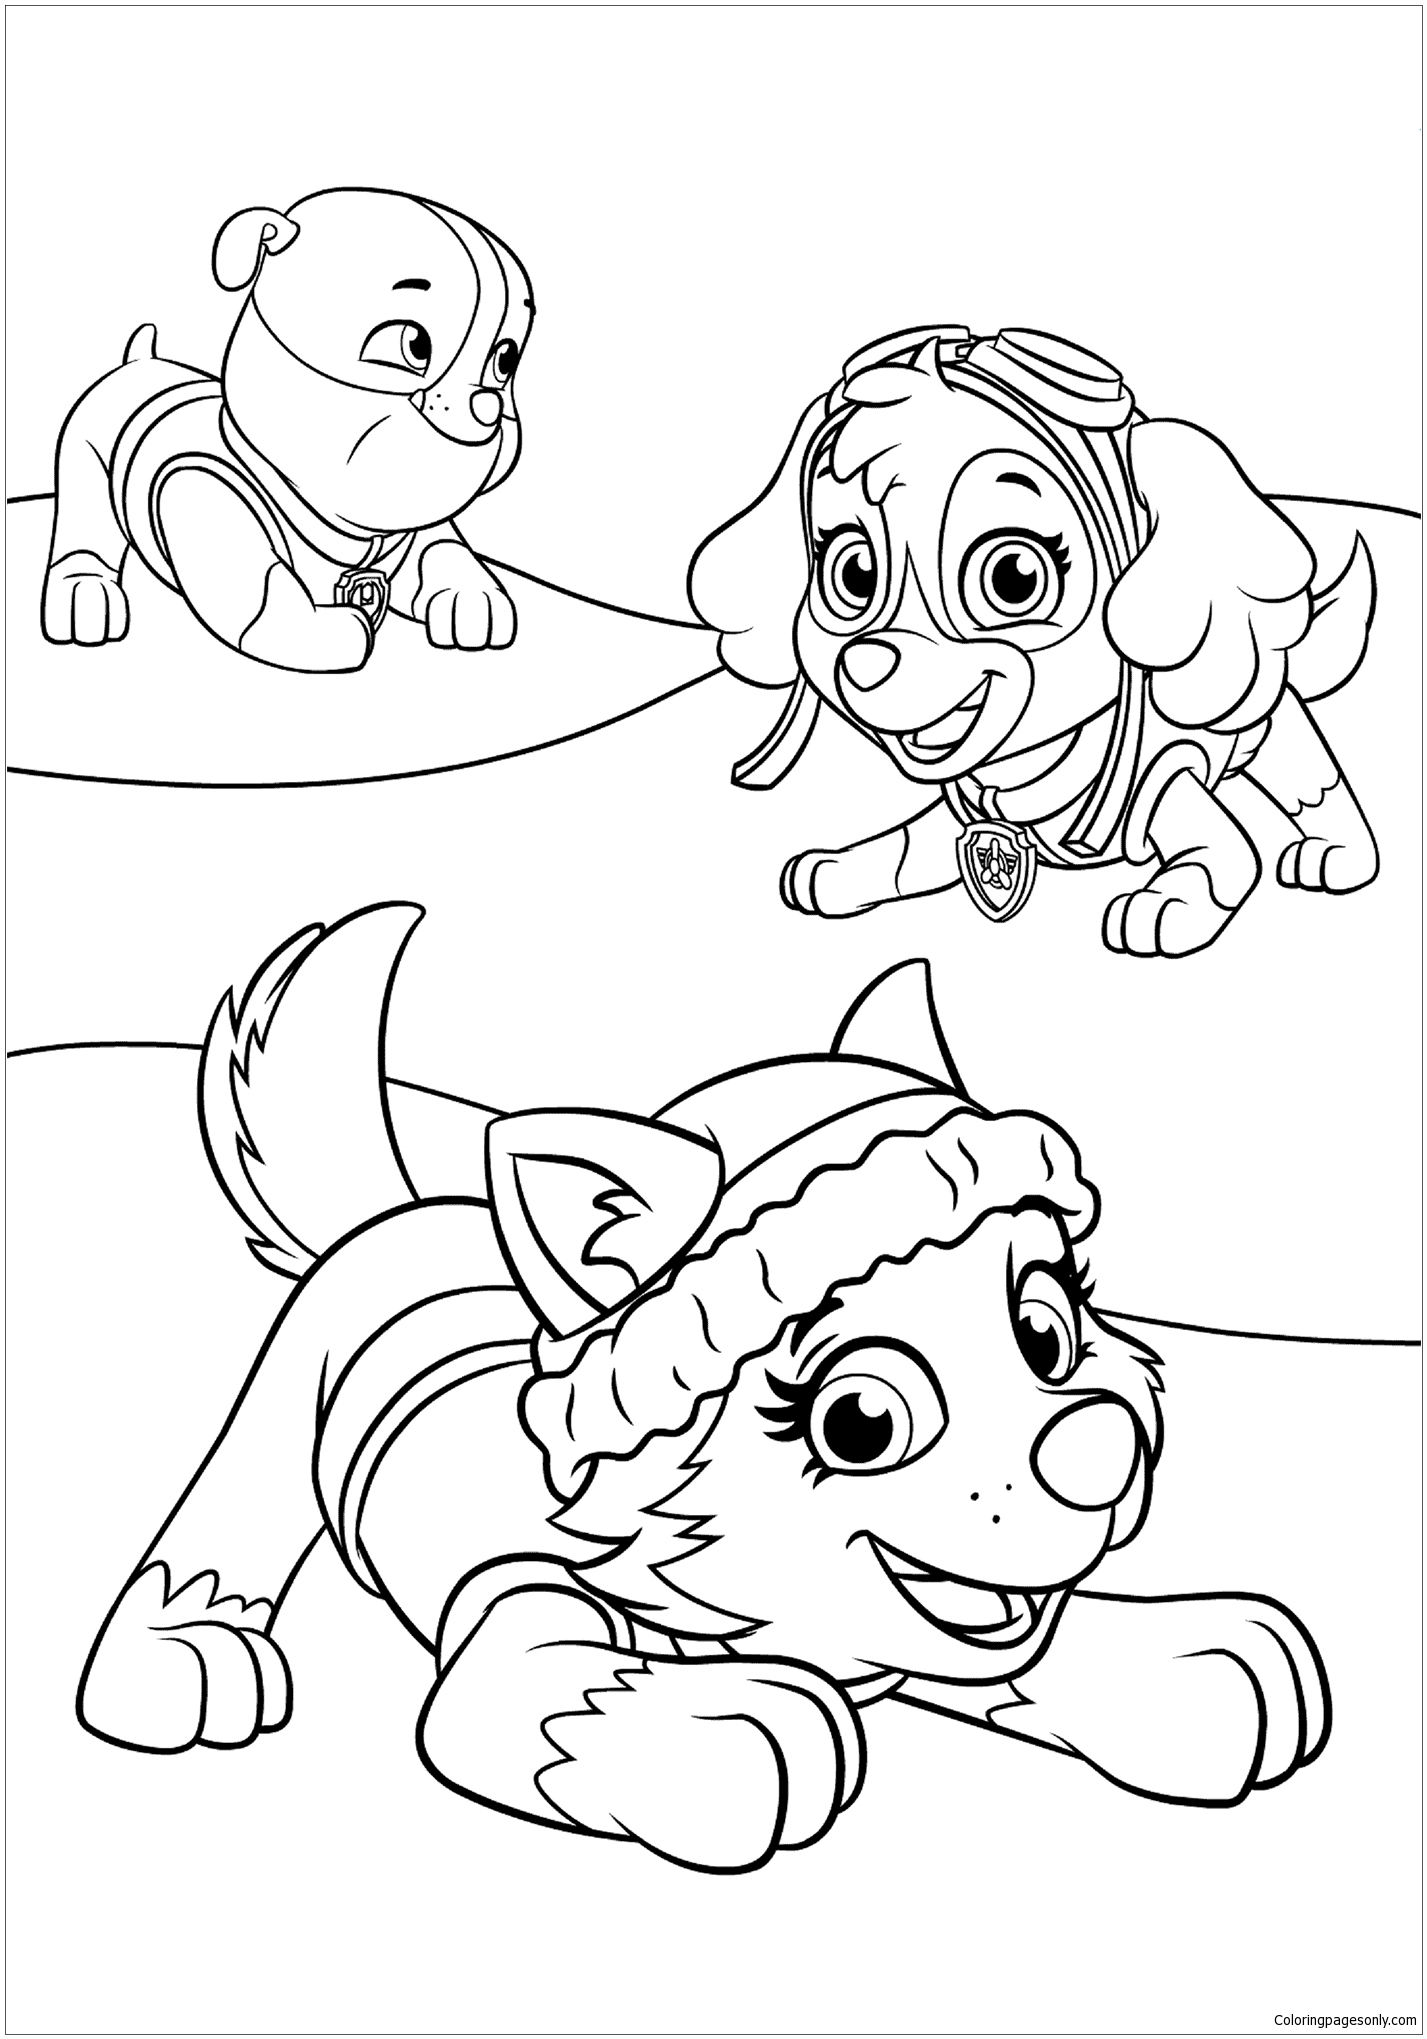 paw patrol coloring pages free paw patrol 20 coloring page free coloring pages online paw free coloring patrol pages